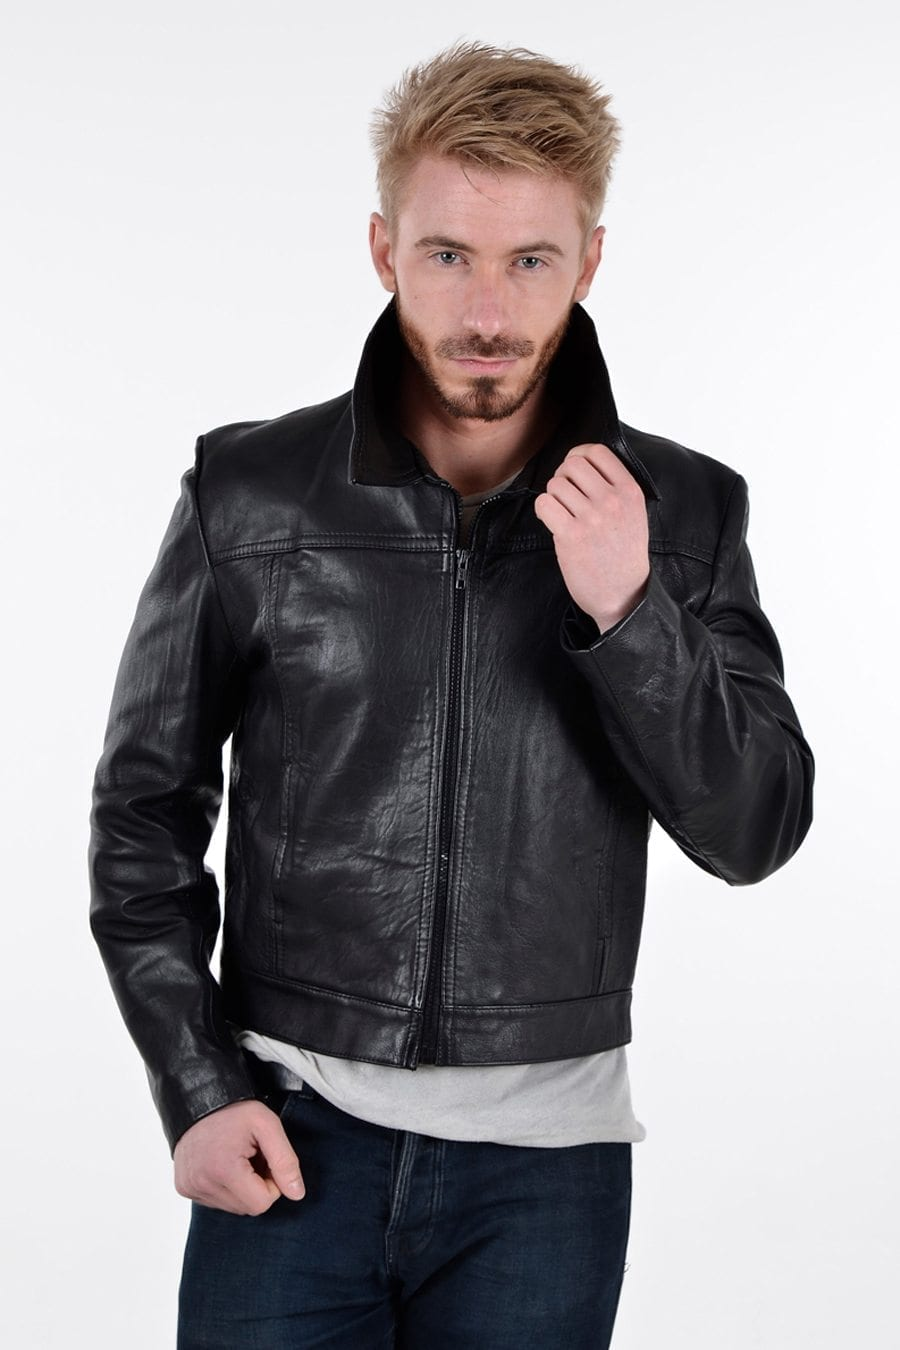 Vintage 1970's black leather bomber jacket